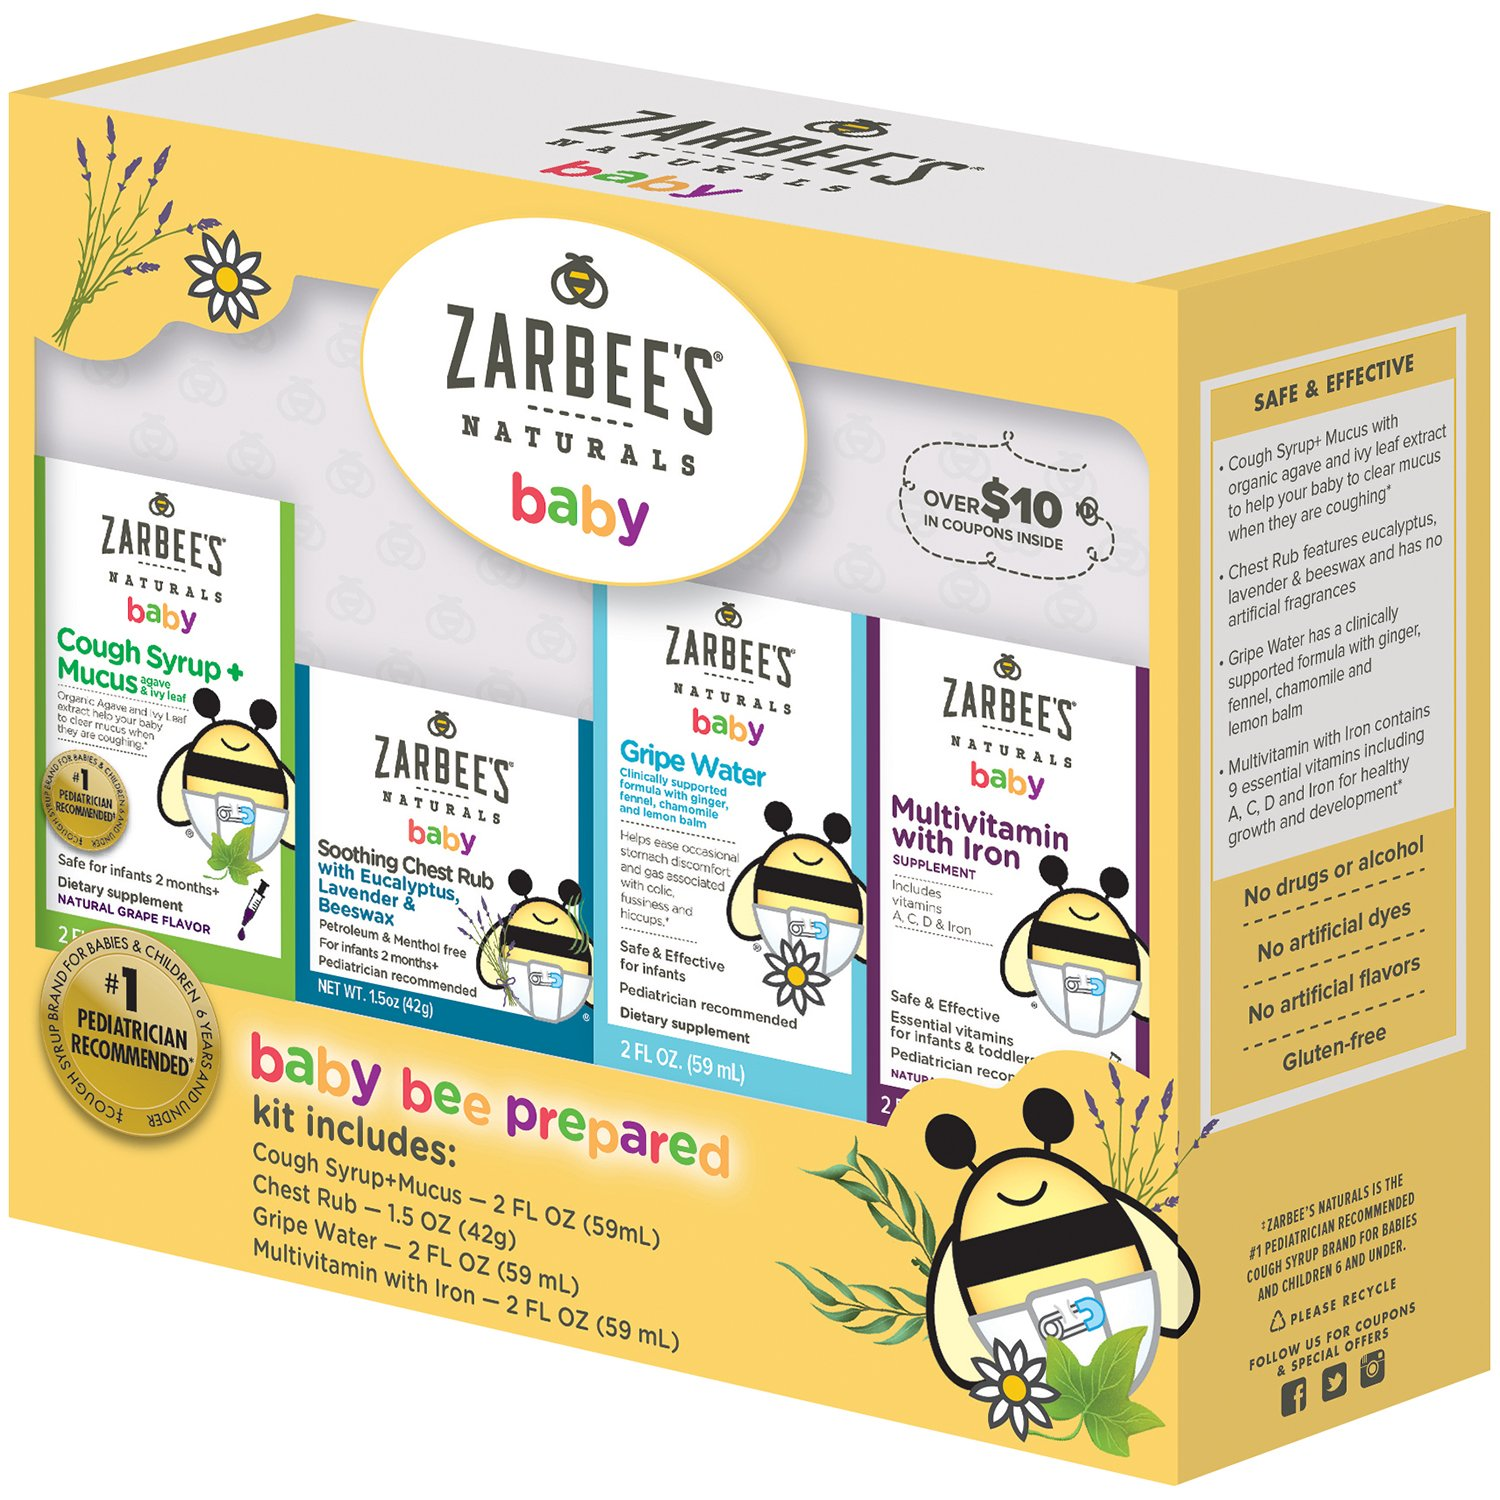 Zarbee's Naturals Baby Bee Prepared Kit, Including Cough Syrup + Mucus, Chest Rub, Gripe Water, Multivitamin with Iron, by Zarbee's Naturals